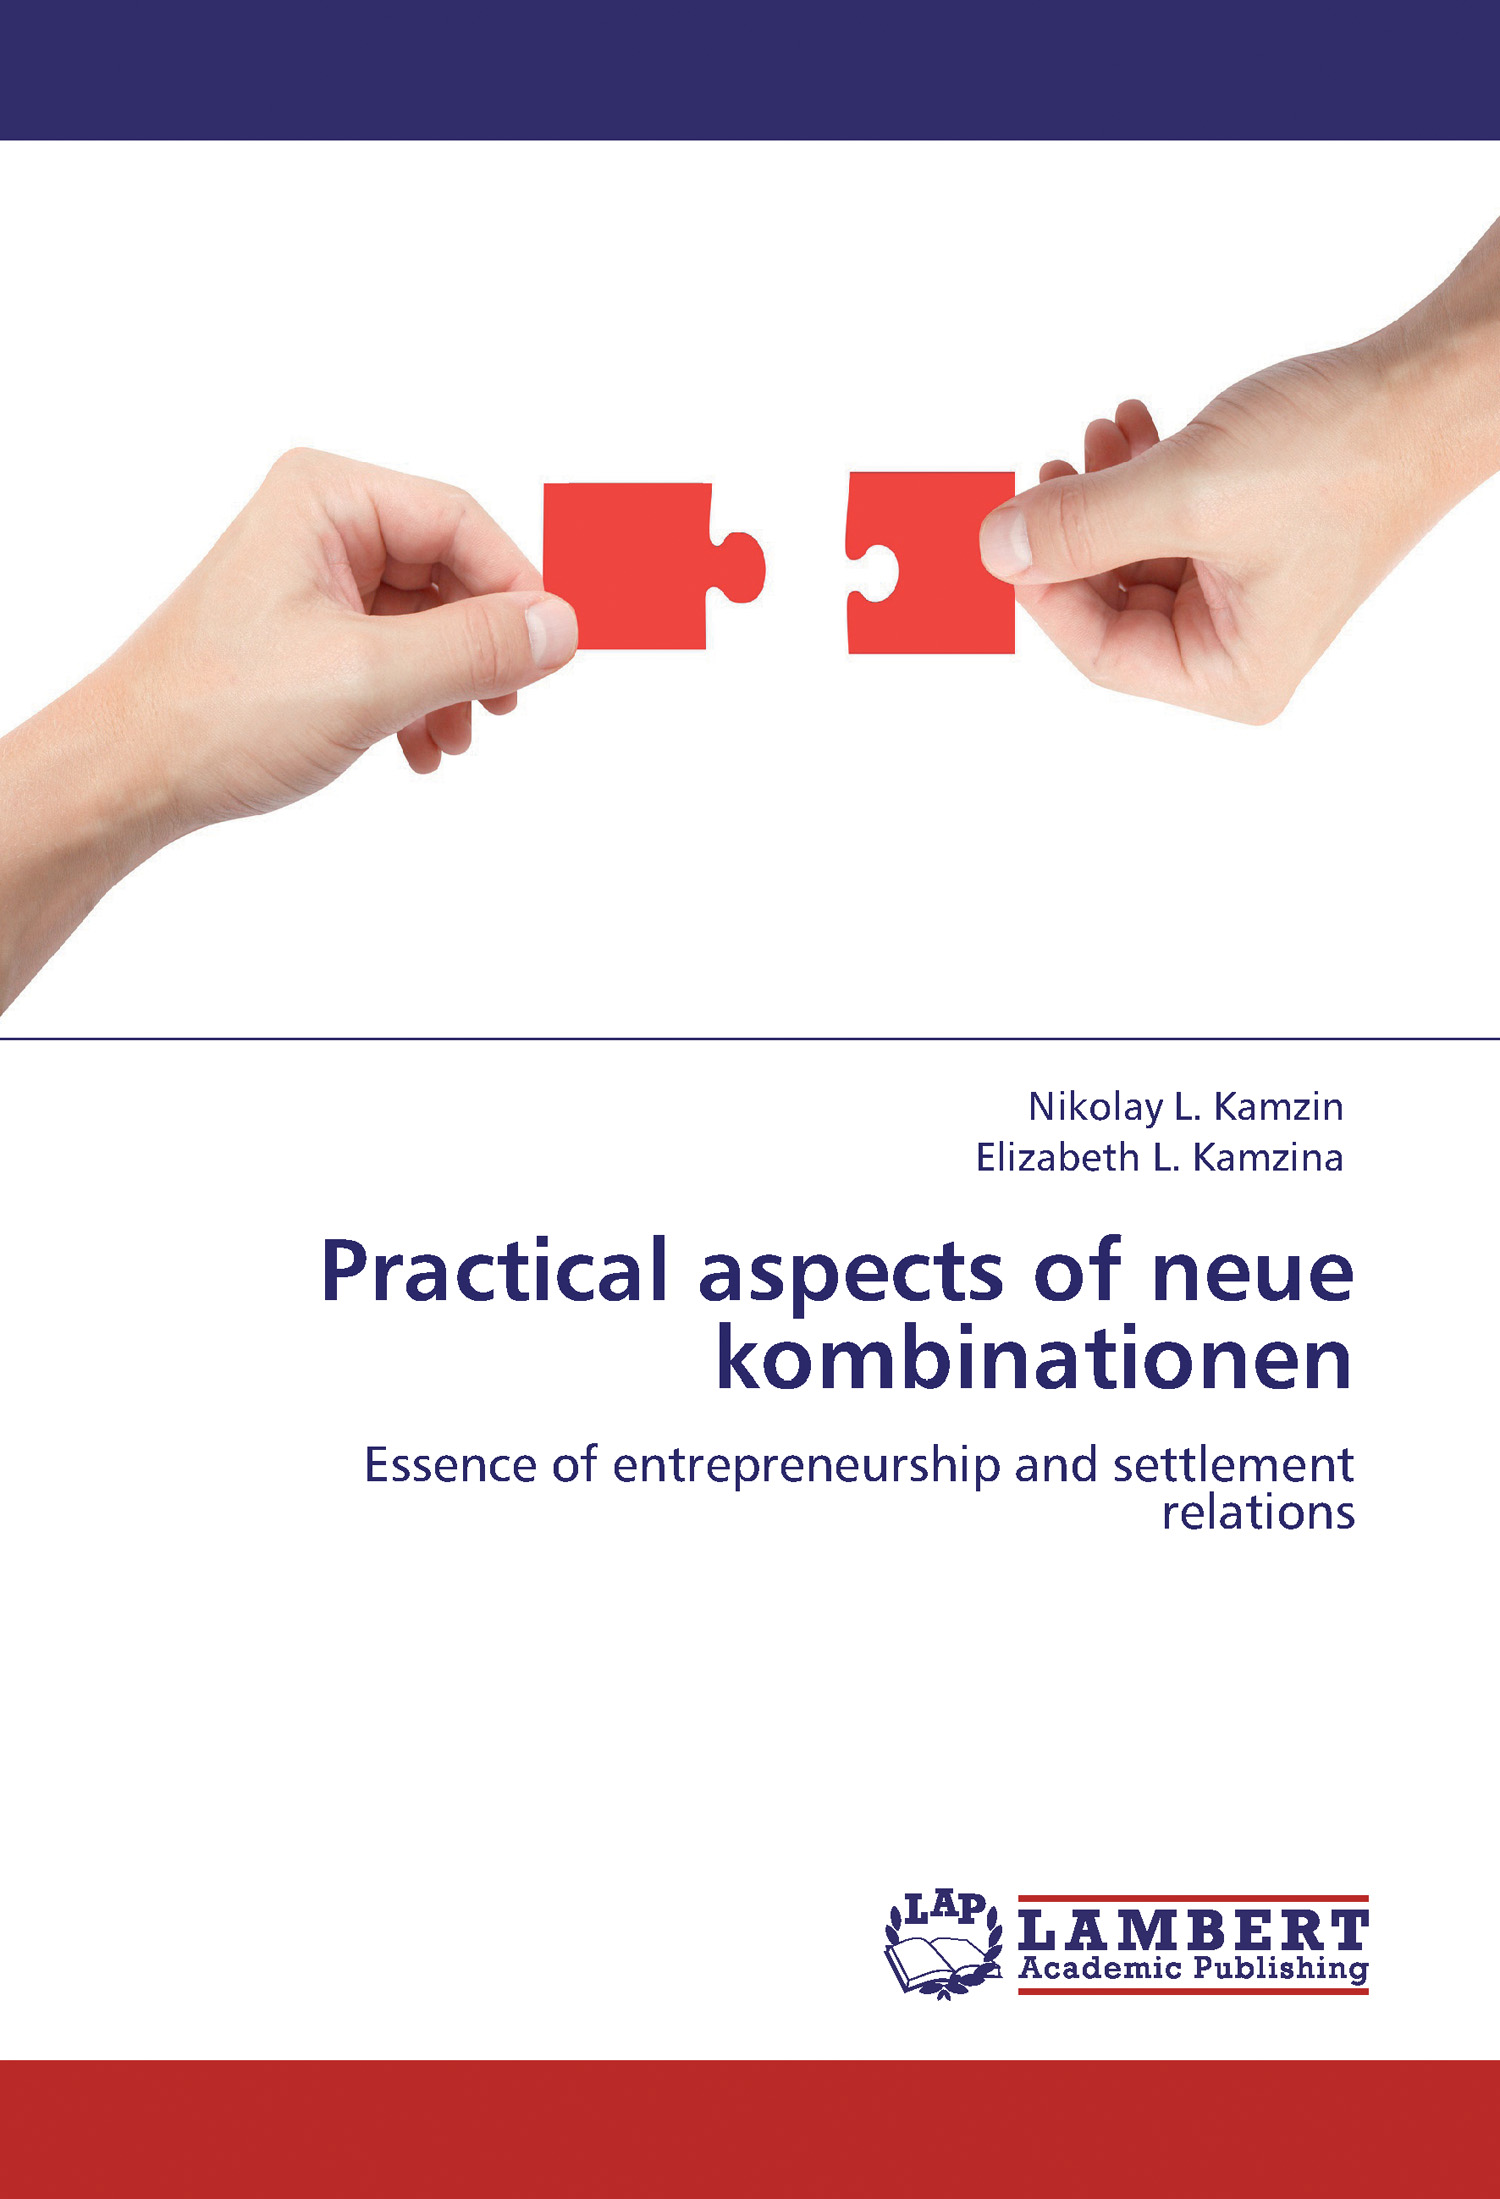 Николай Камзин Practical aspects of neue kombinationen. Essence of entrepreneurship and settlement relations 1056716